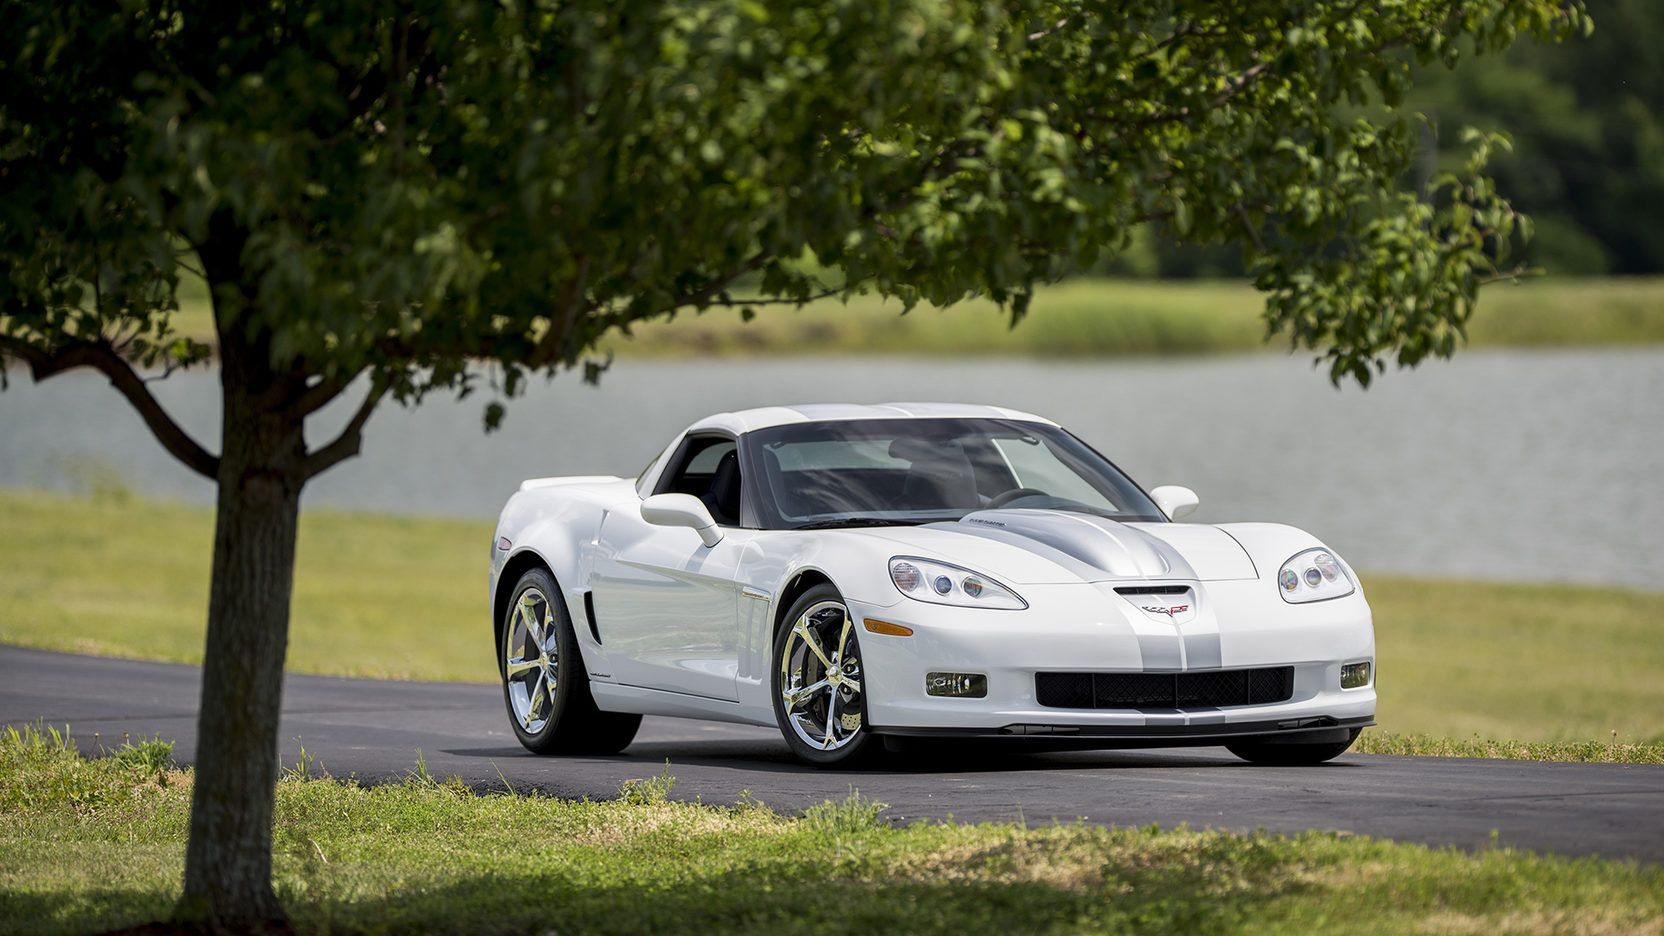 2013 Chevrolet Corvette Callaway presented as Lot F118.1